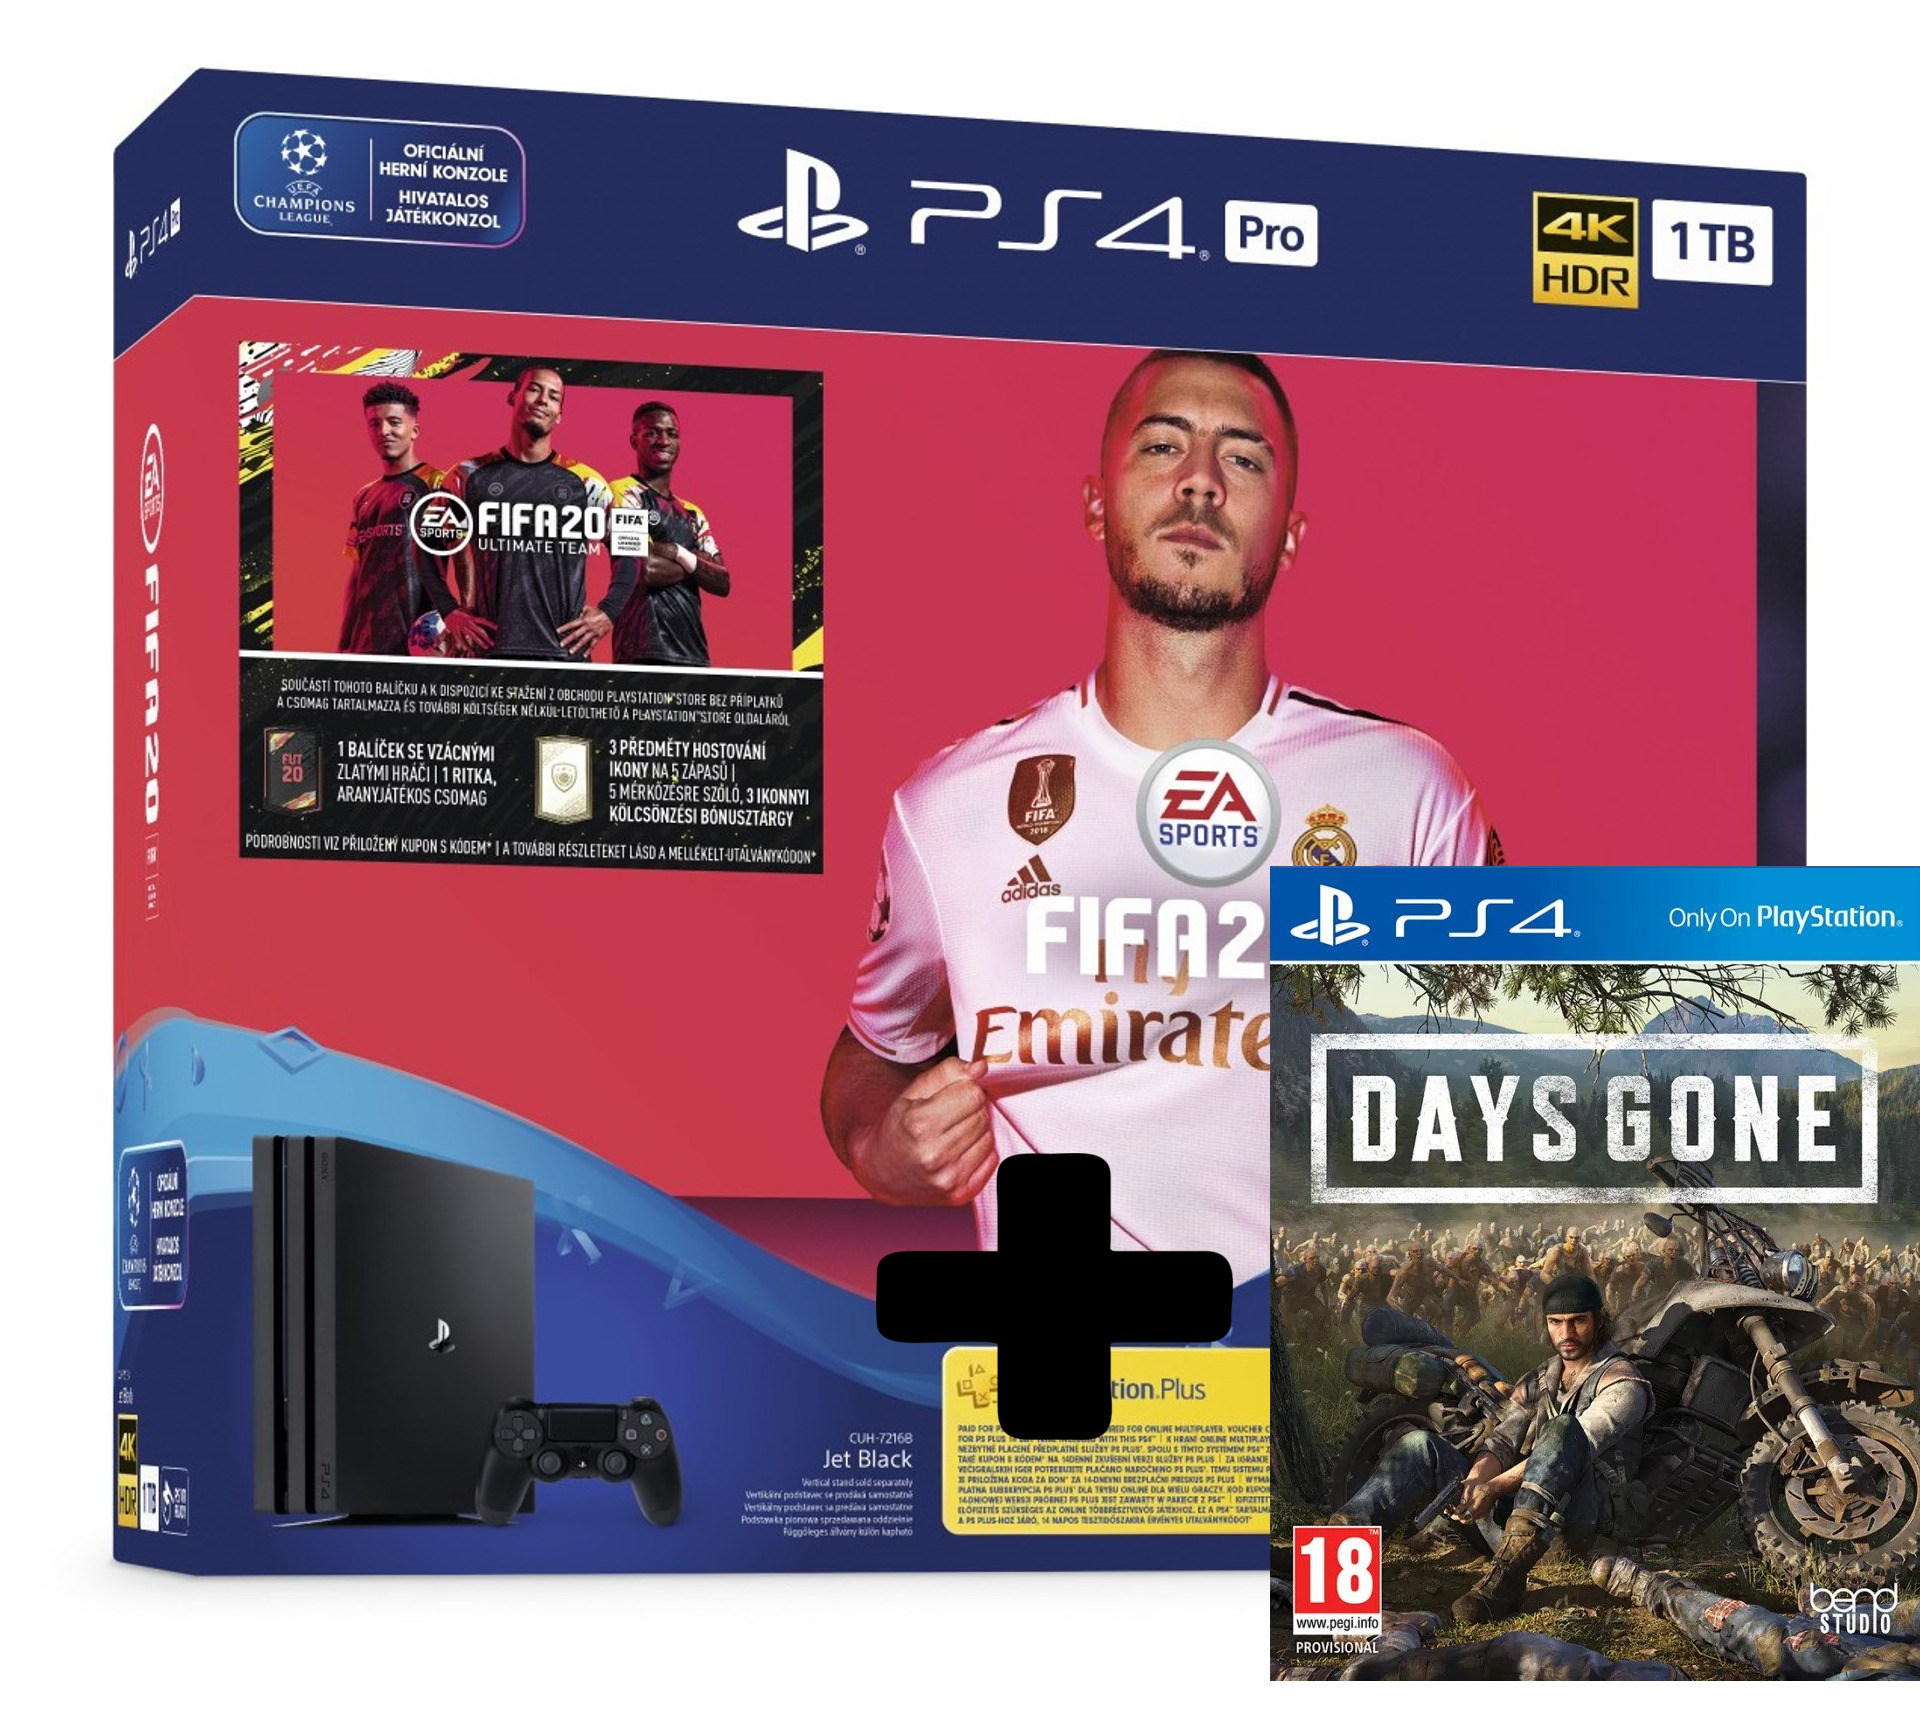 Konzole PlayStation 4 Pro 1TB + FIFA 20 + Days Gone (PS4)